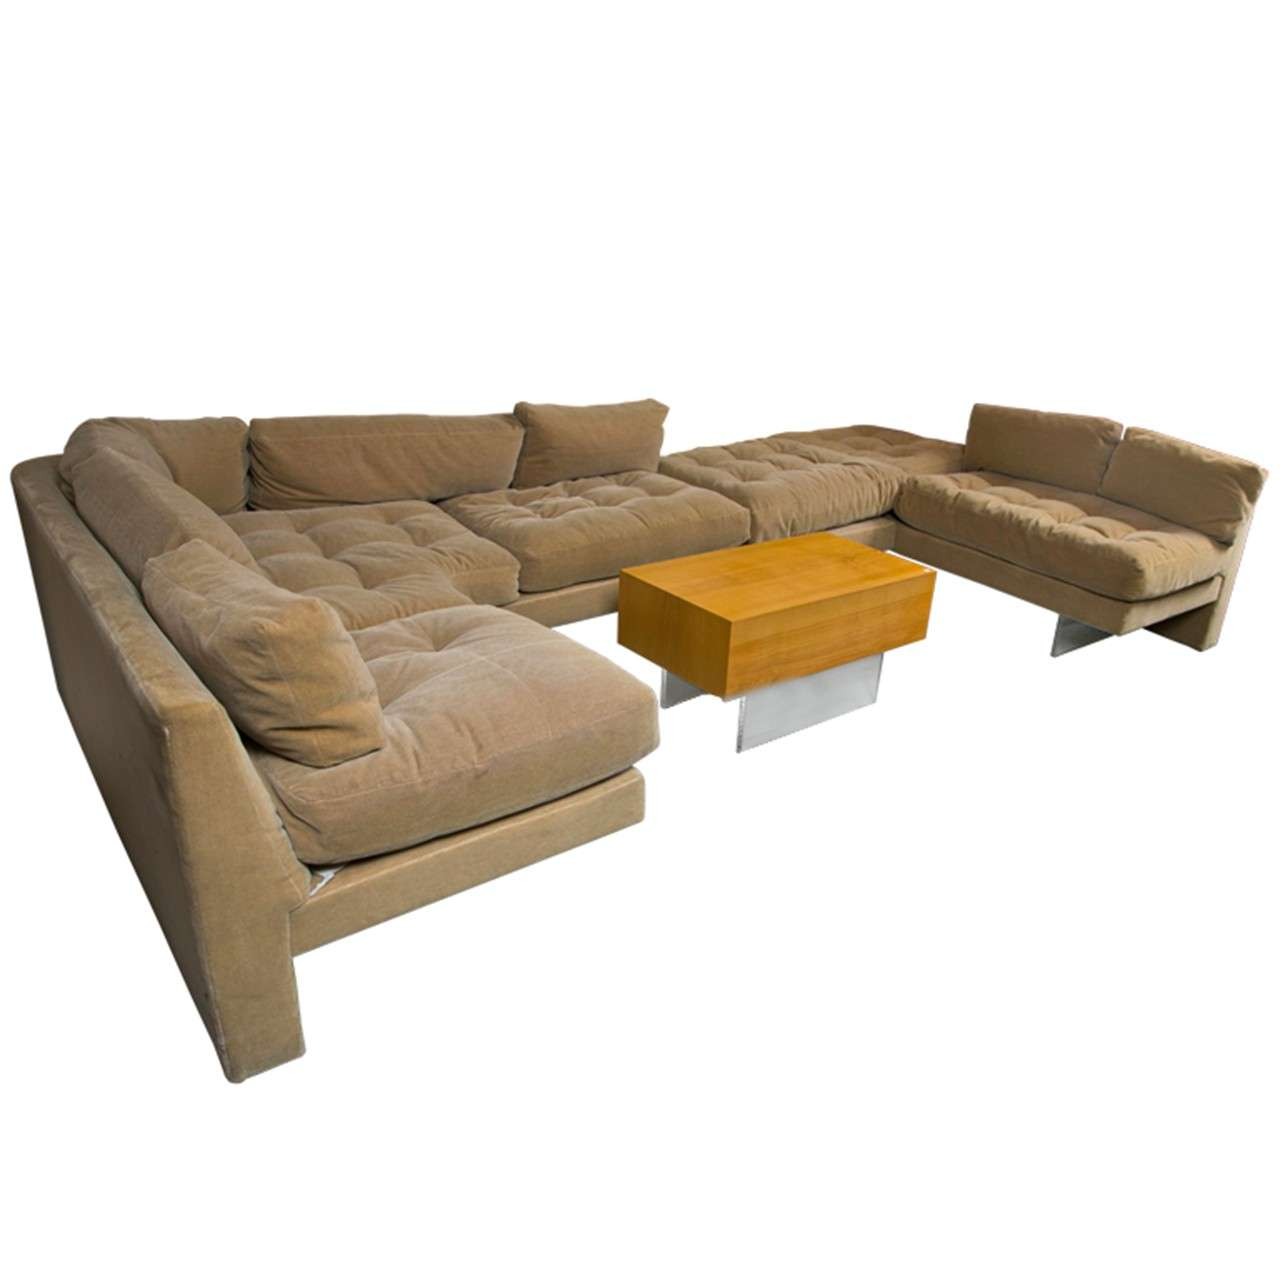 Mid century vladmimir kagan sectional sofa and coffee table set at 1stdibs One of a kind coffee tables